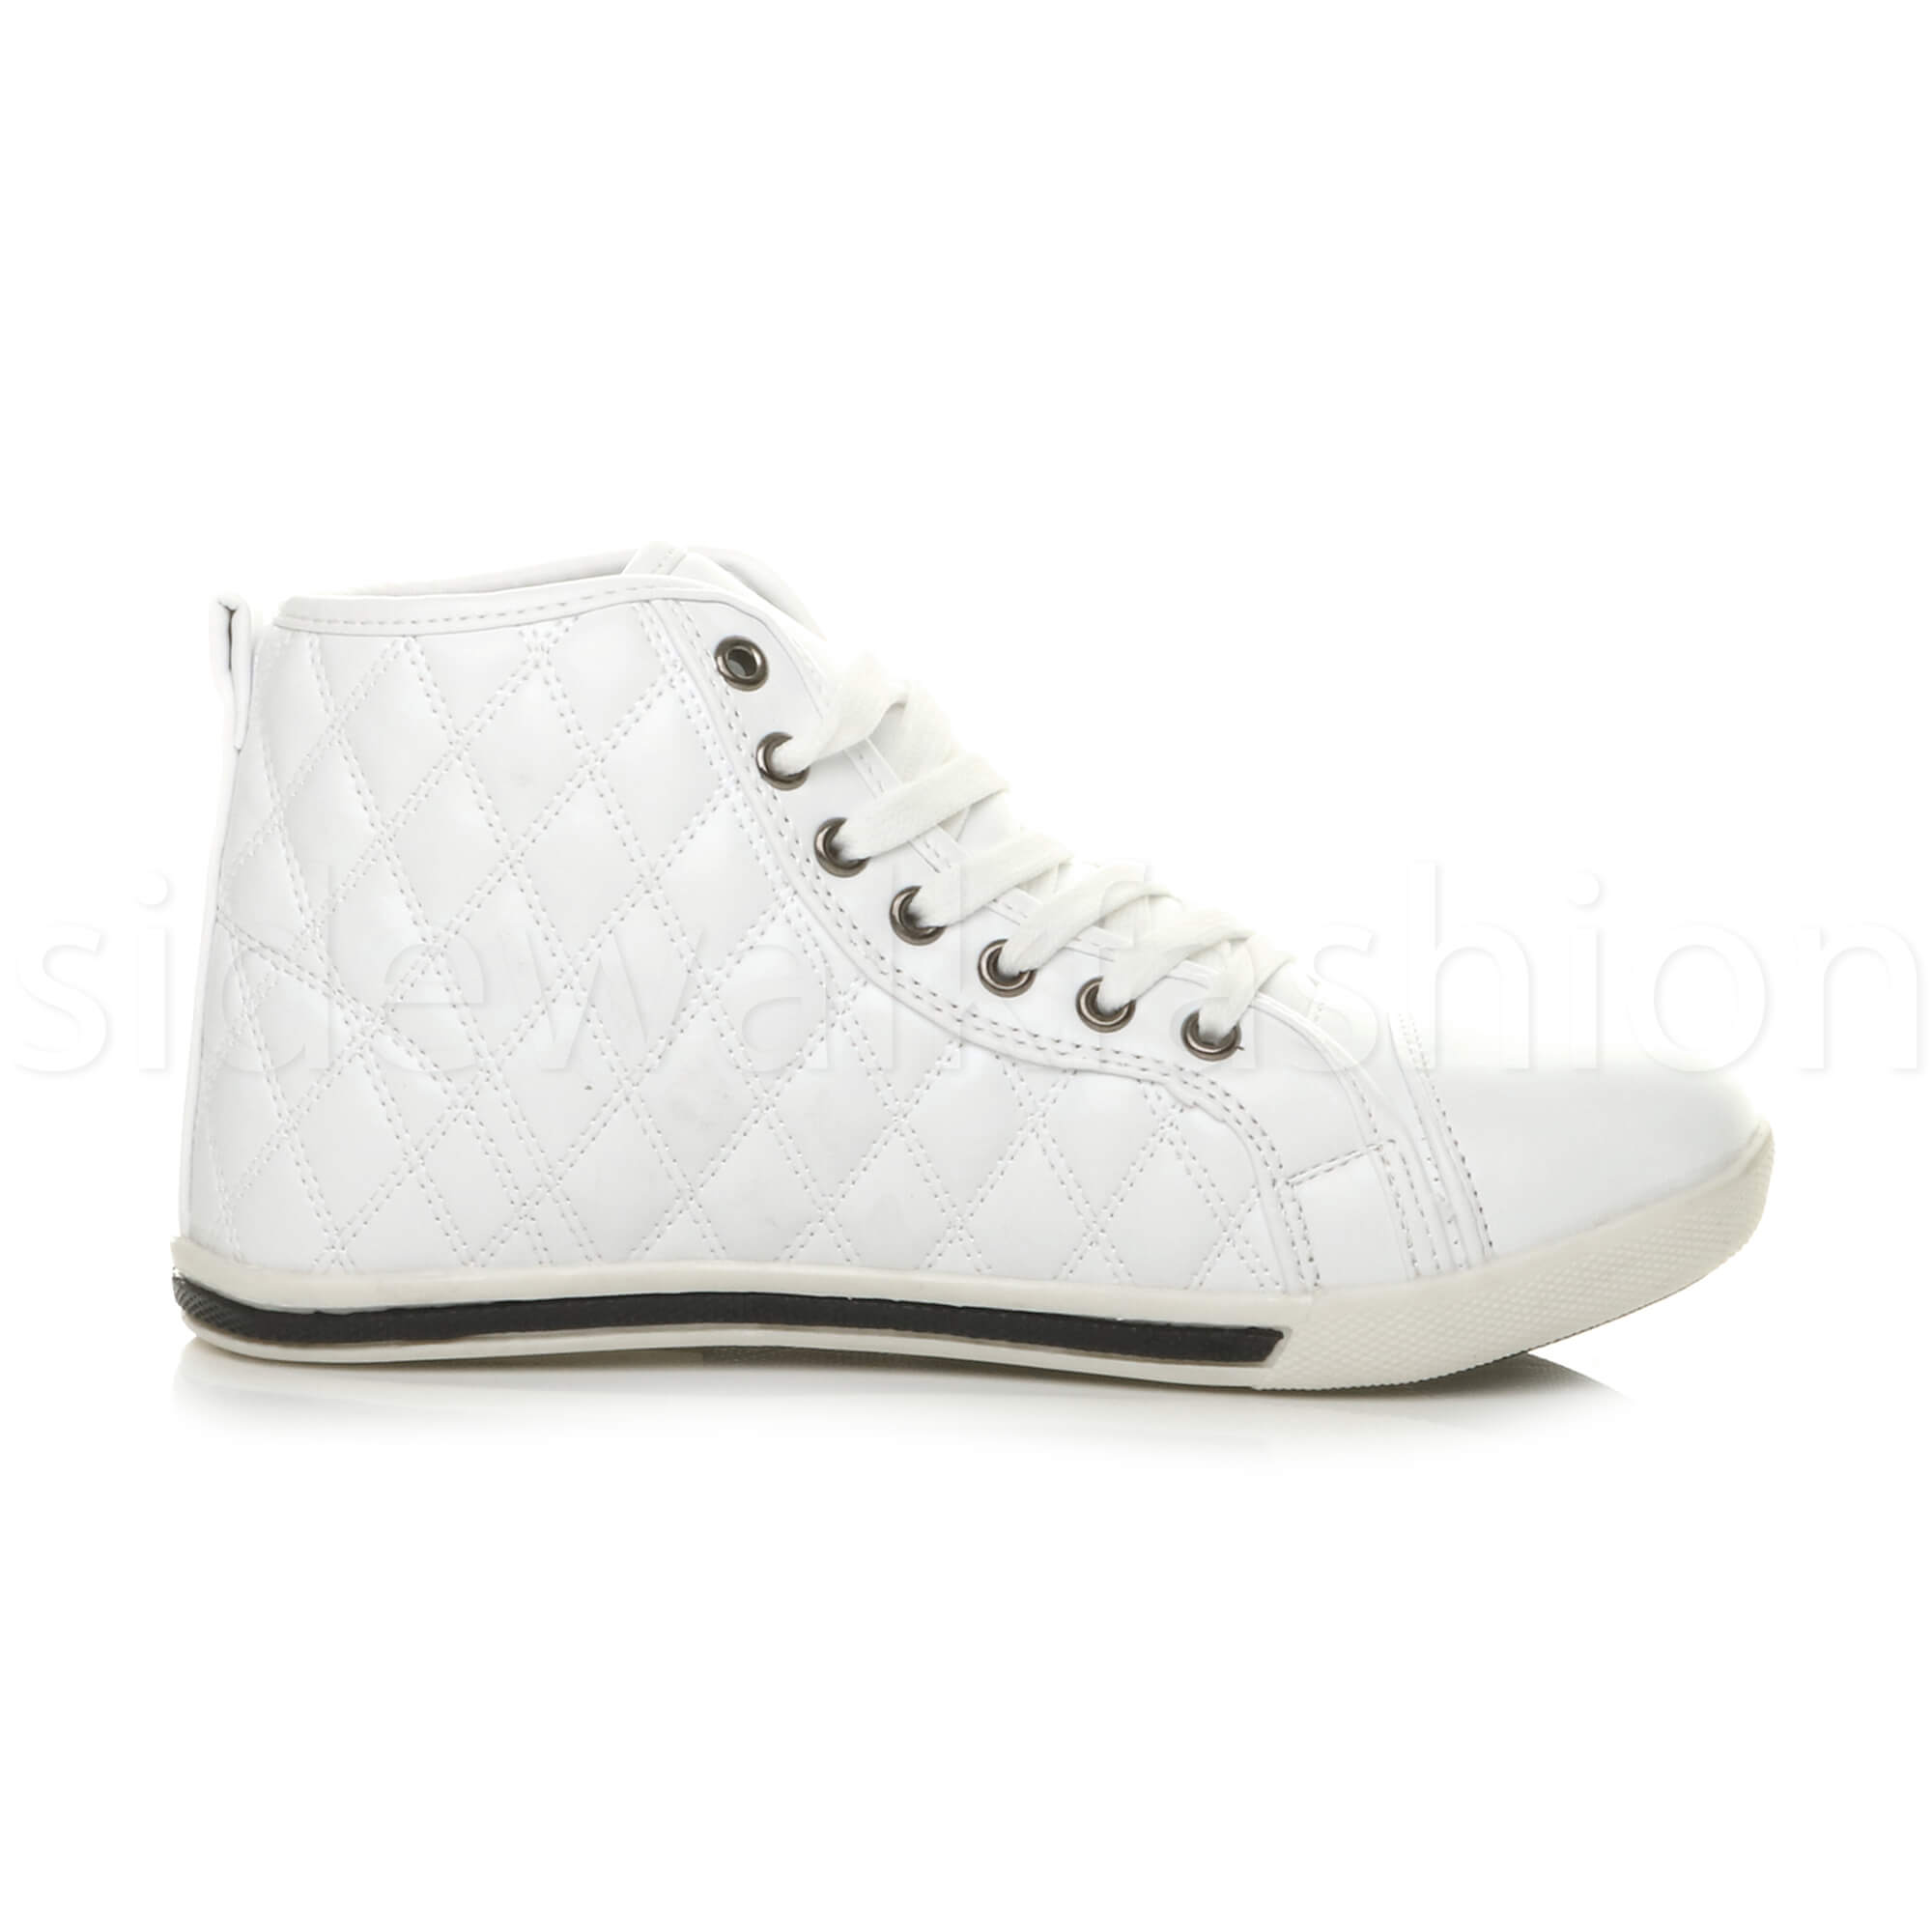 Womens ladies flat quilted high top trainers hi rise sneakers ankle boots size